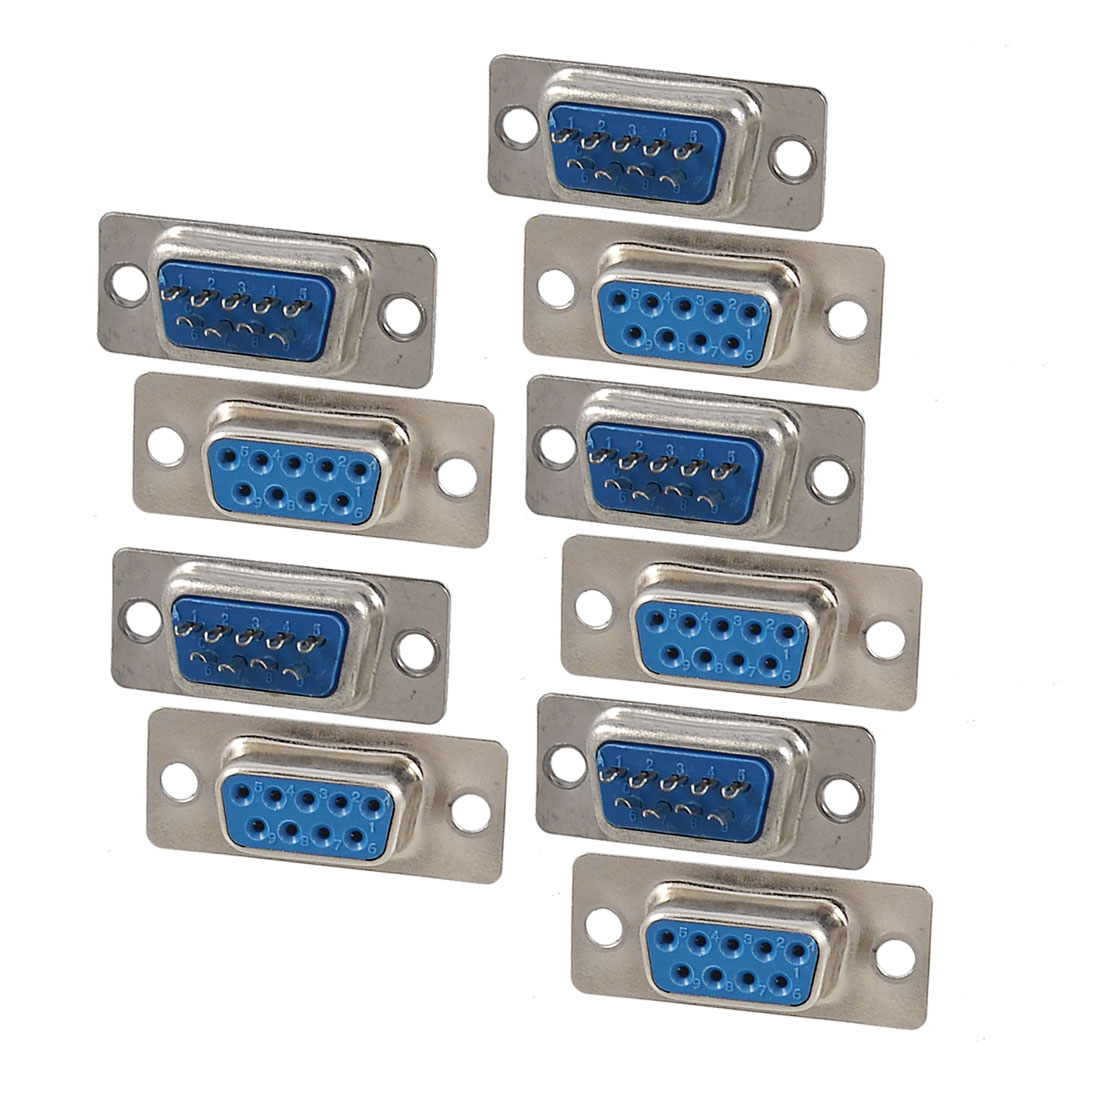 10 Pcs DB9 9 Pin Female Jack Adapter Connector Replacement